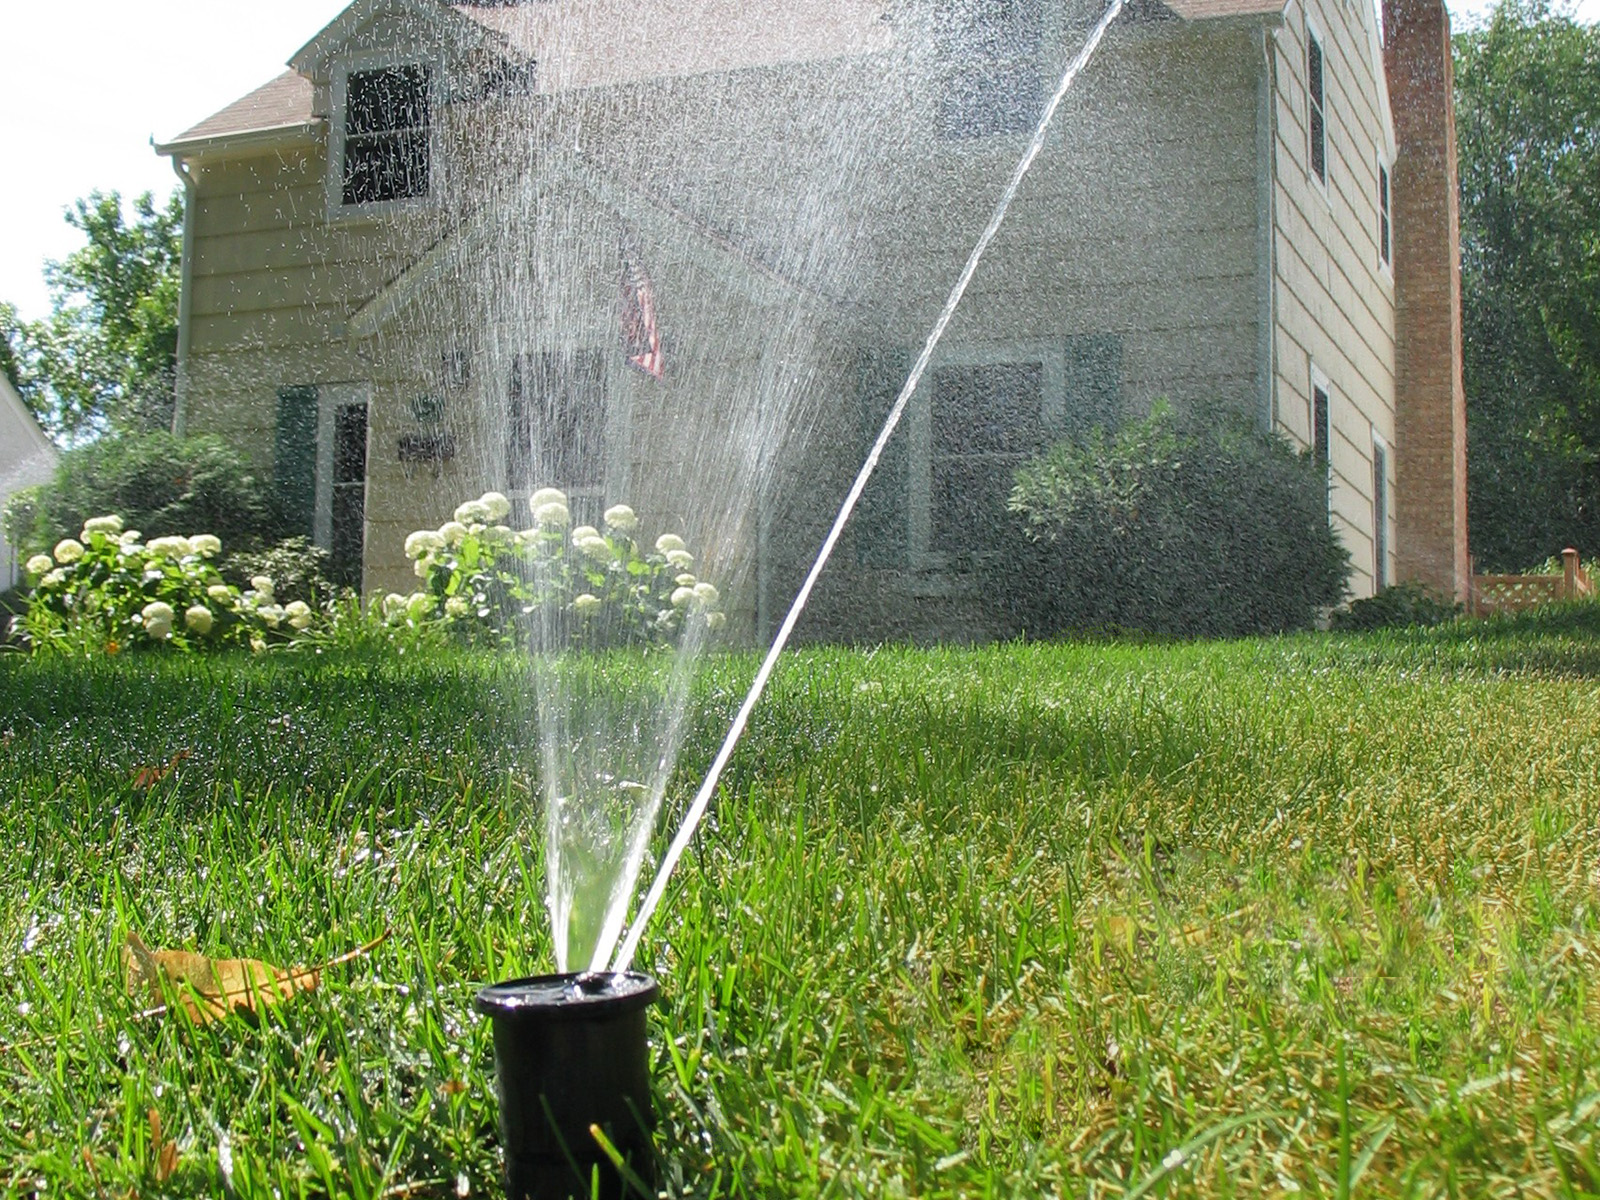 residential irrigation lawn sprinkler Irrigation By Design